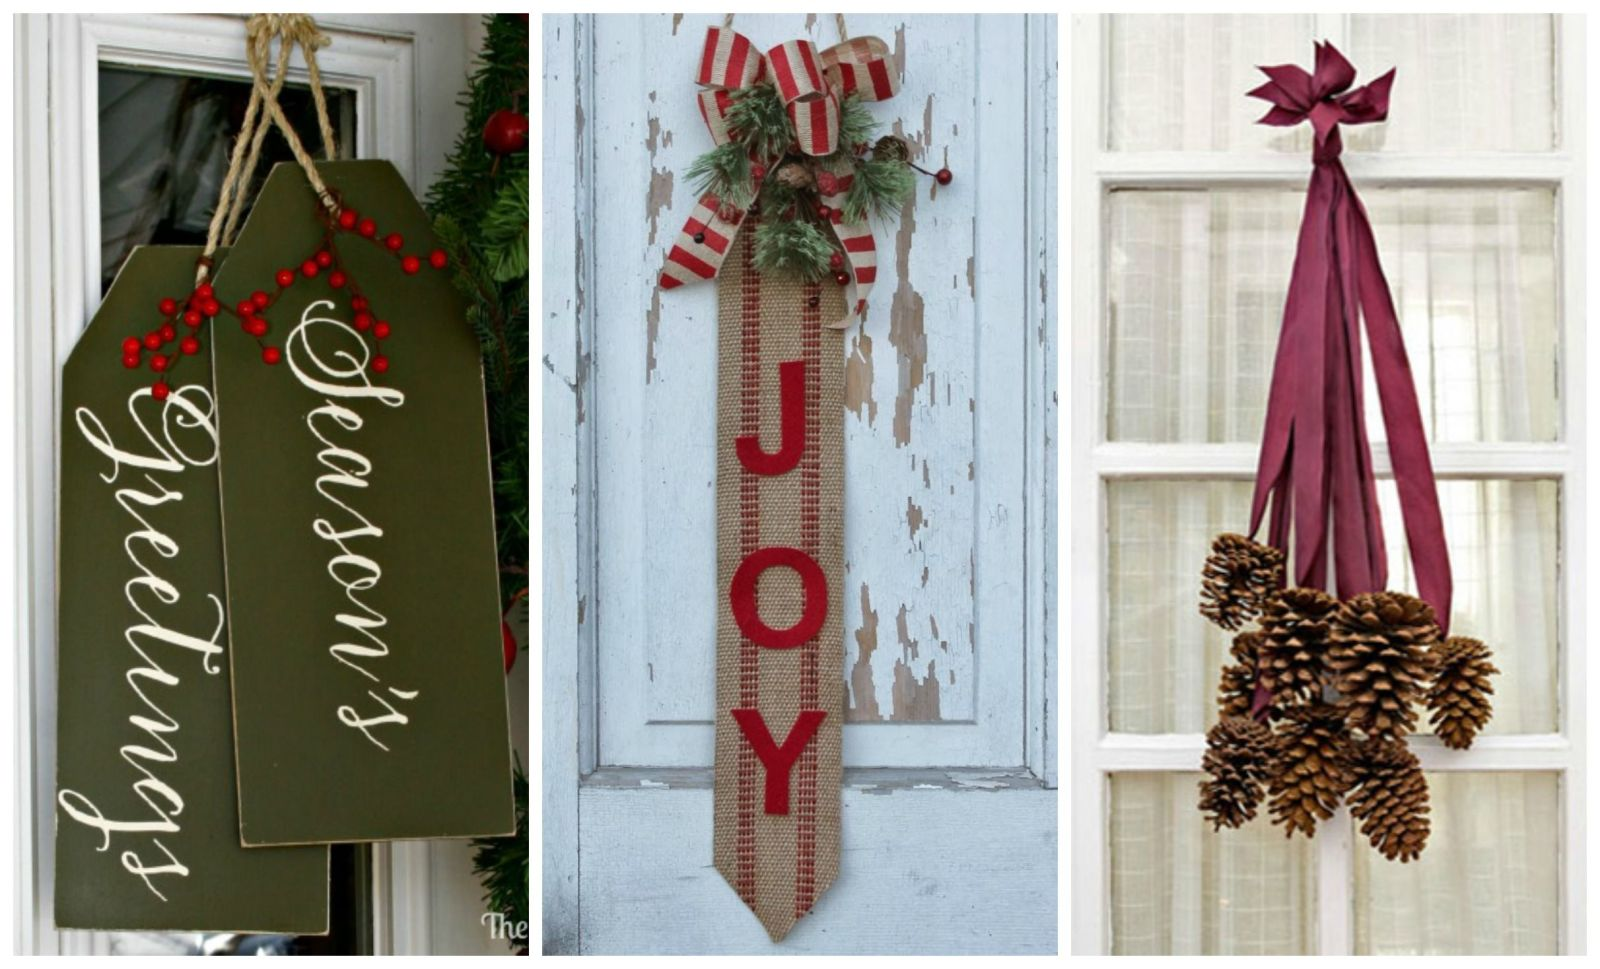 Christmas decoration ideas to make at home - Hang Something Unique This Season Previous 12 Cheerful Christmas Door Decorations